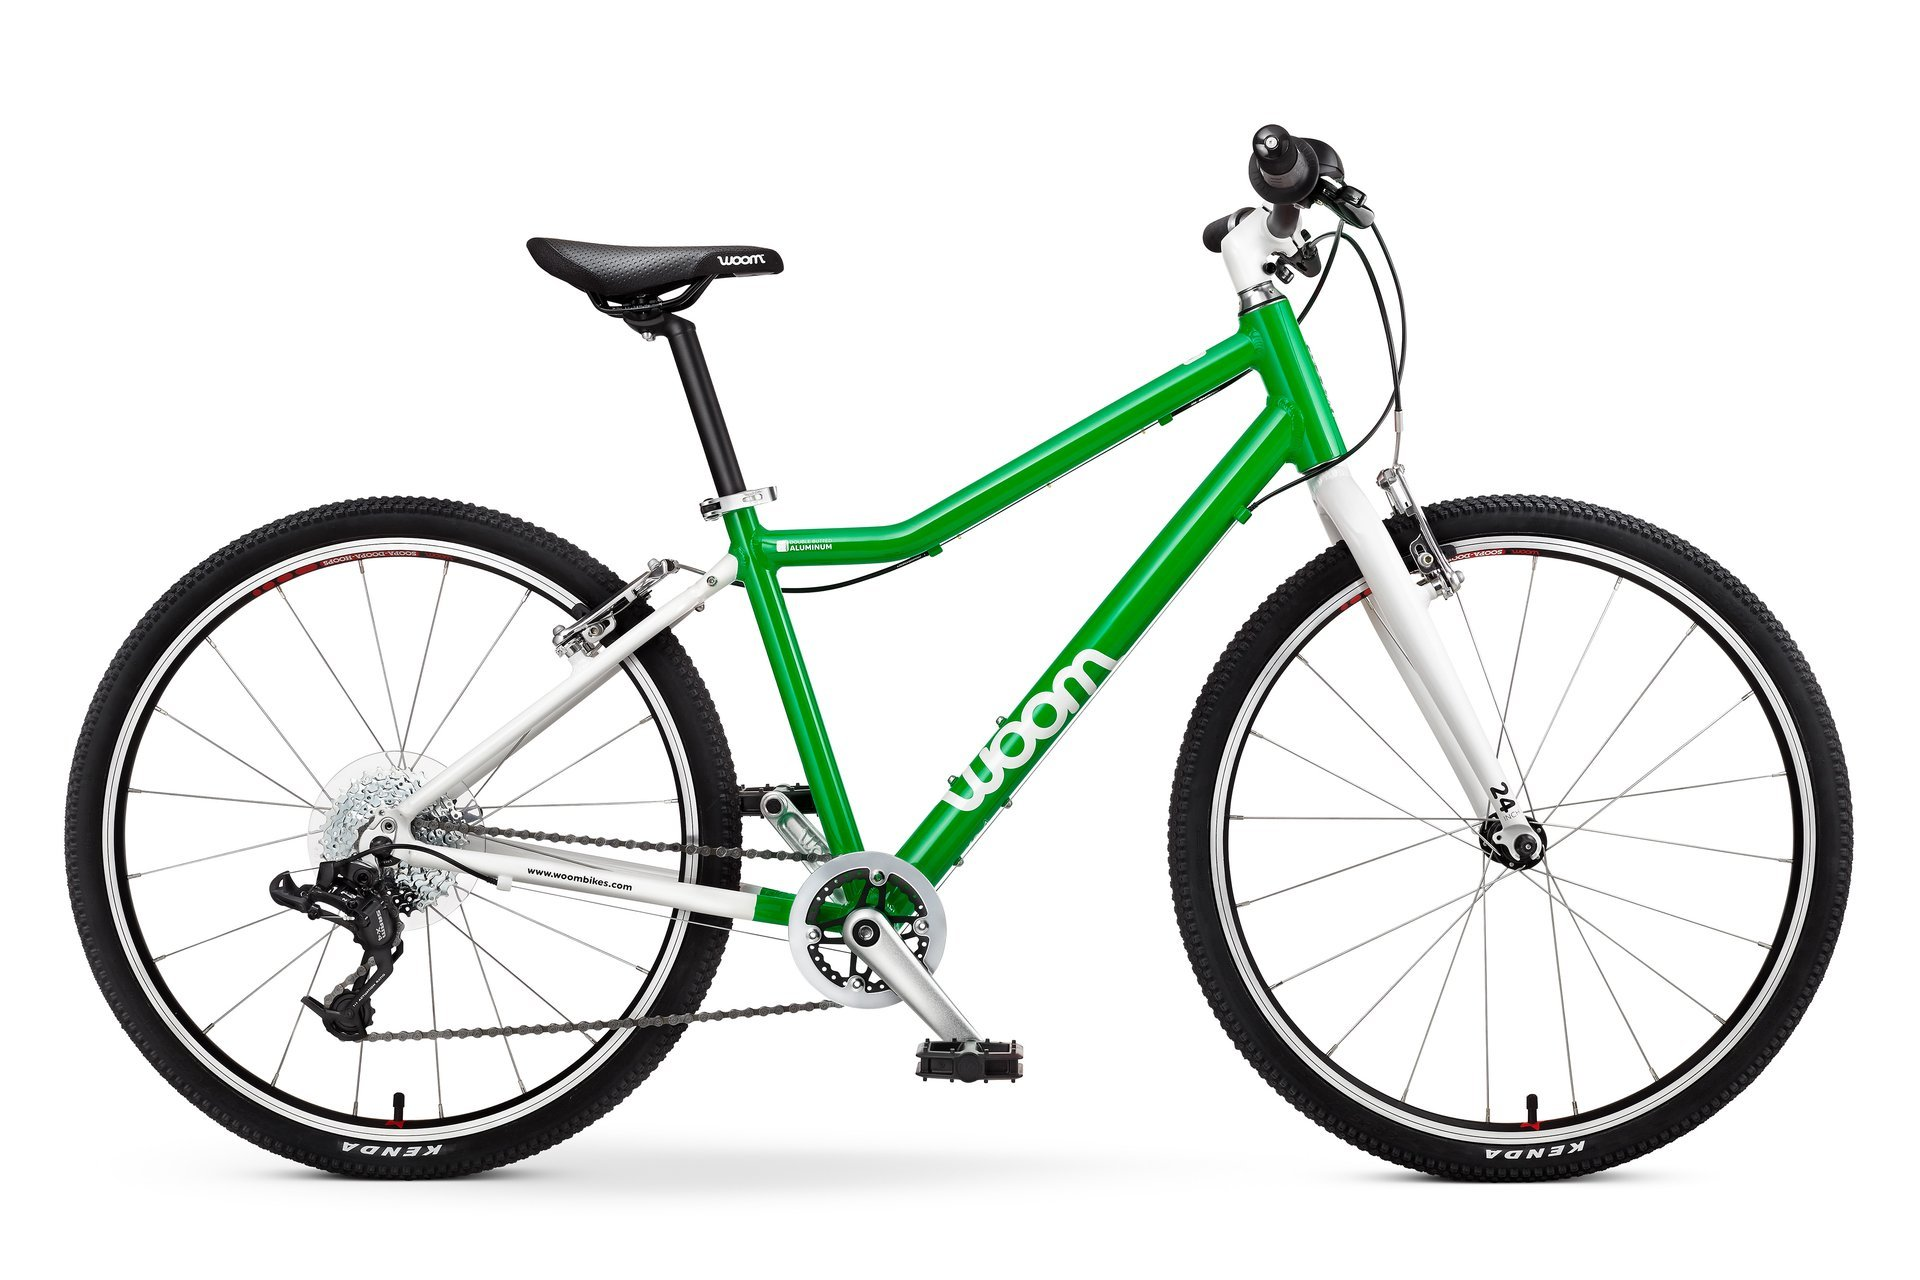 "woom 5 Pedal Bike 24"", 8-Speed, Ages 7 to 11 Years, Green"